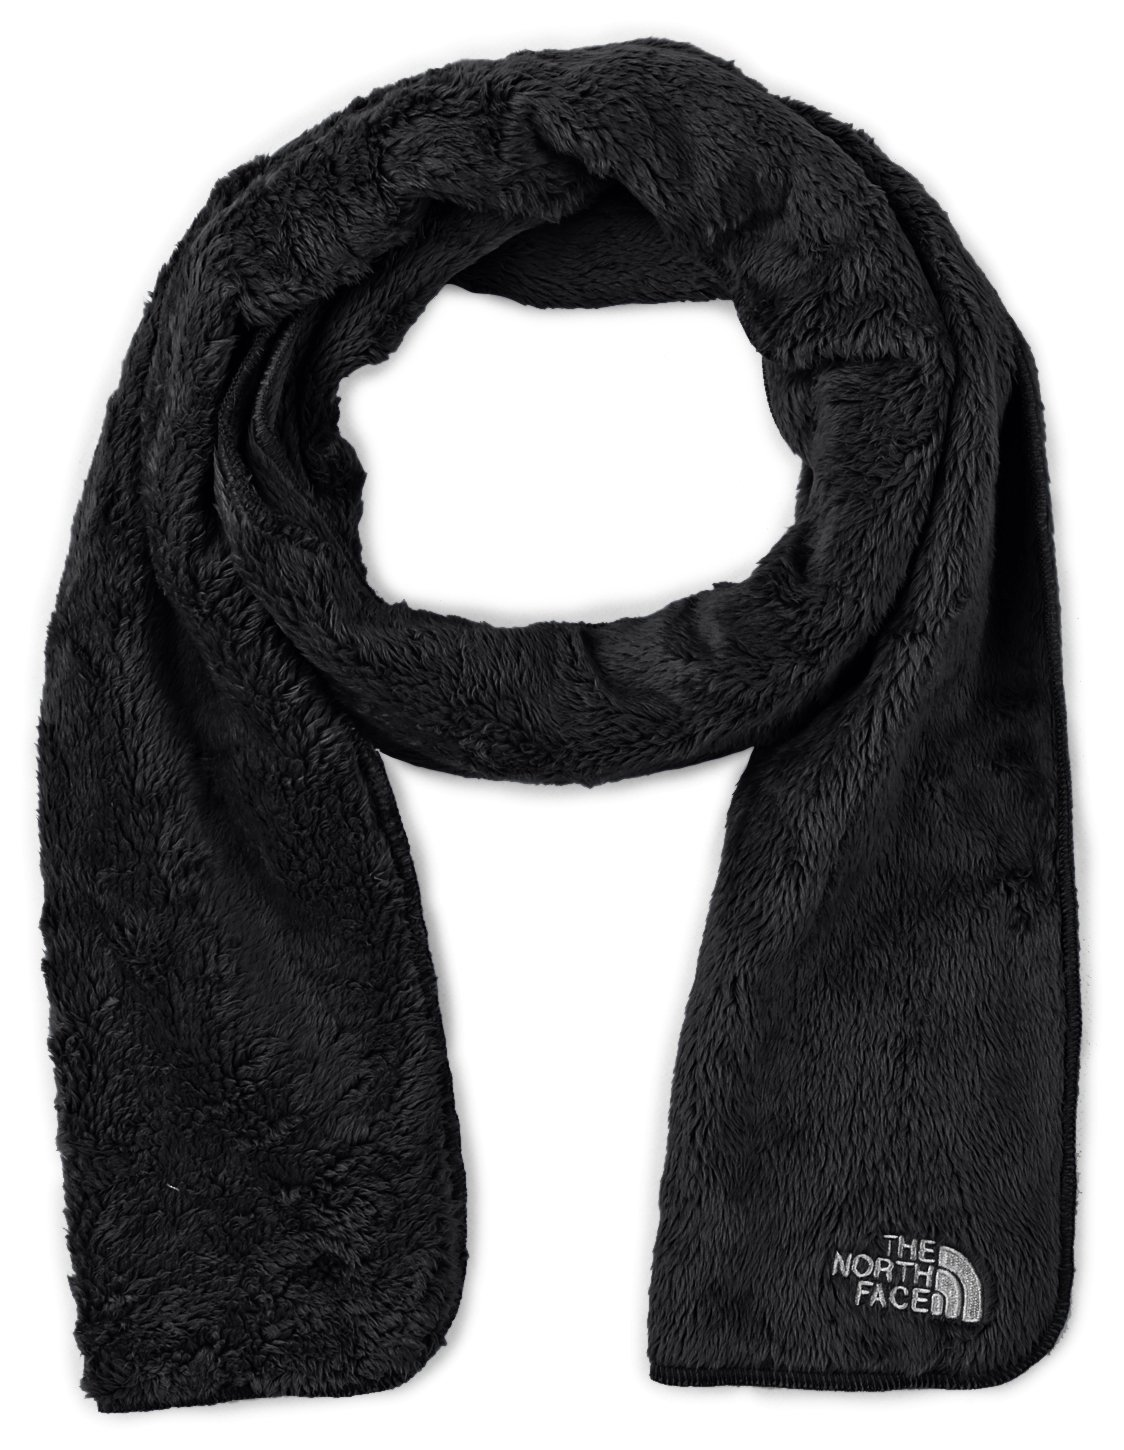 The North Face Denali Thermal Scarf TNF Black One Size